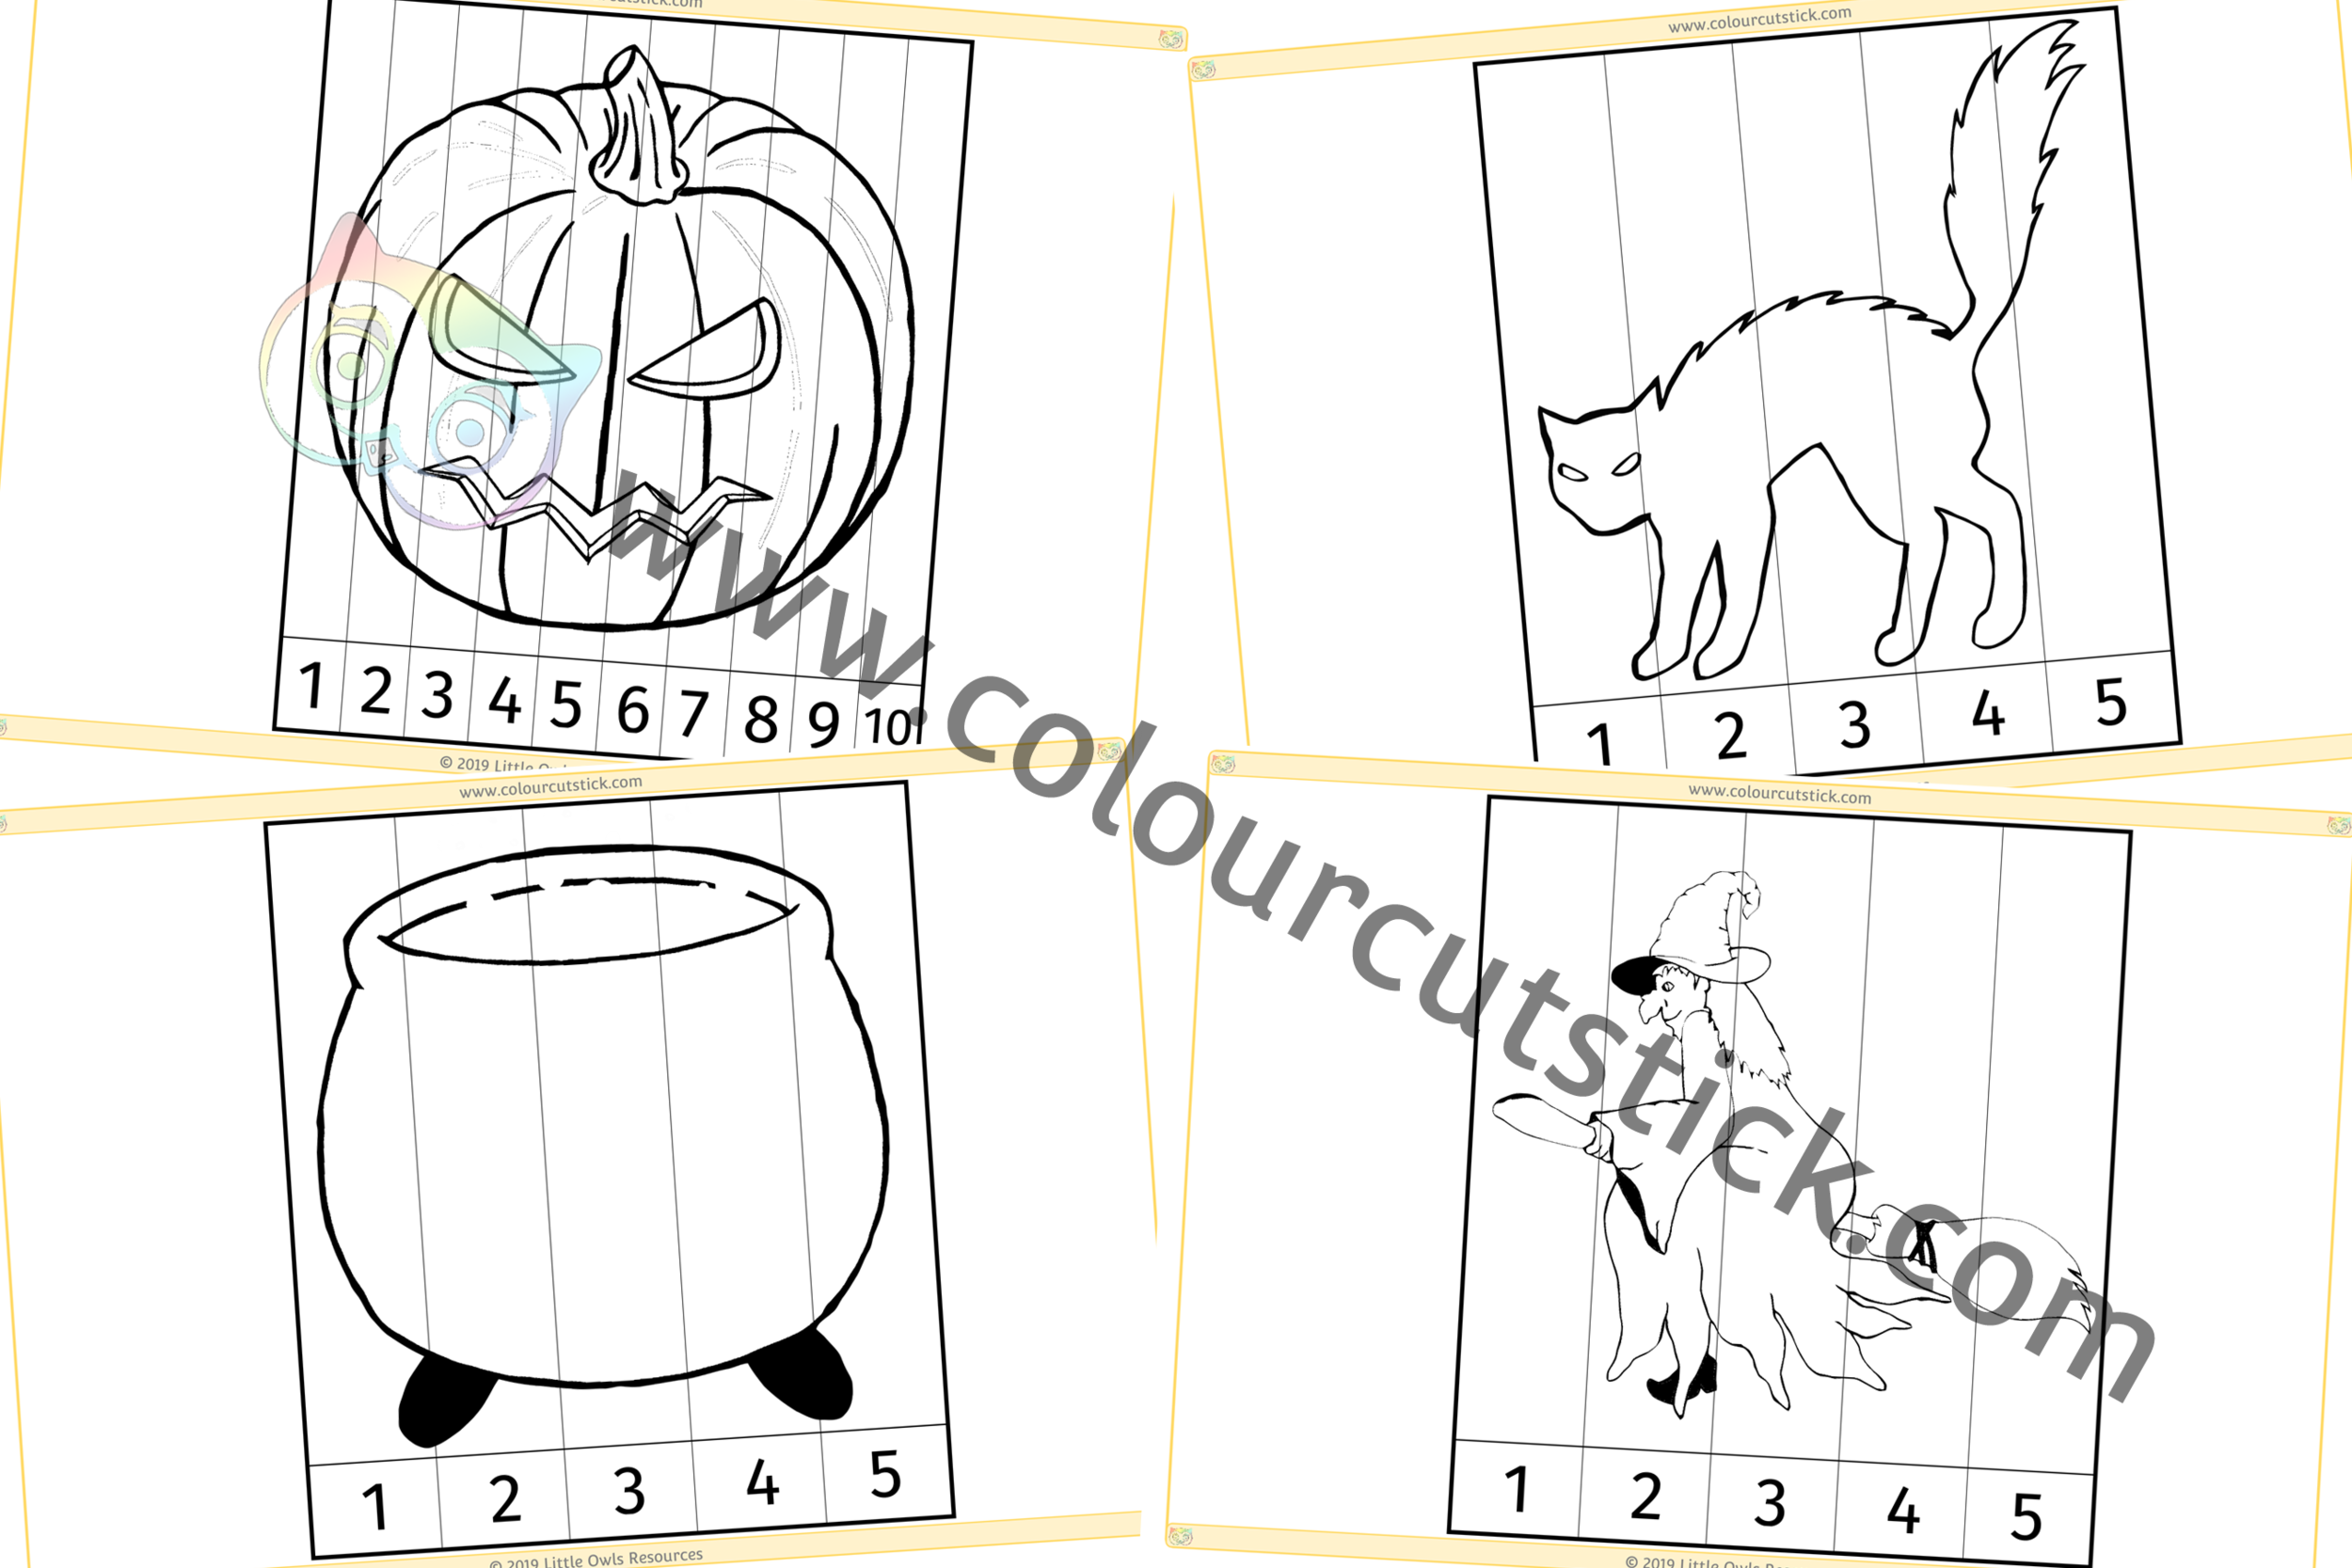 Click on images below for direct link to our www.colourcutstick.com Halloween page, home of our colouring activities!